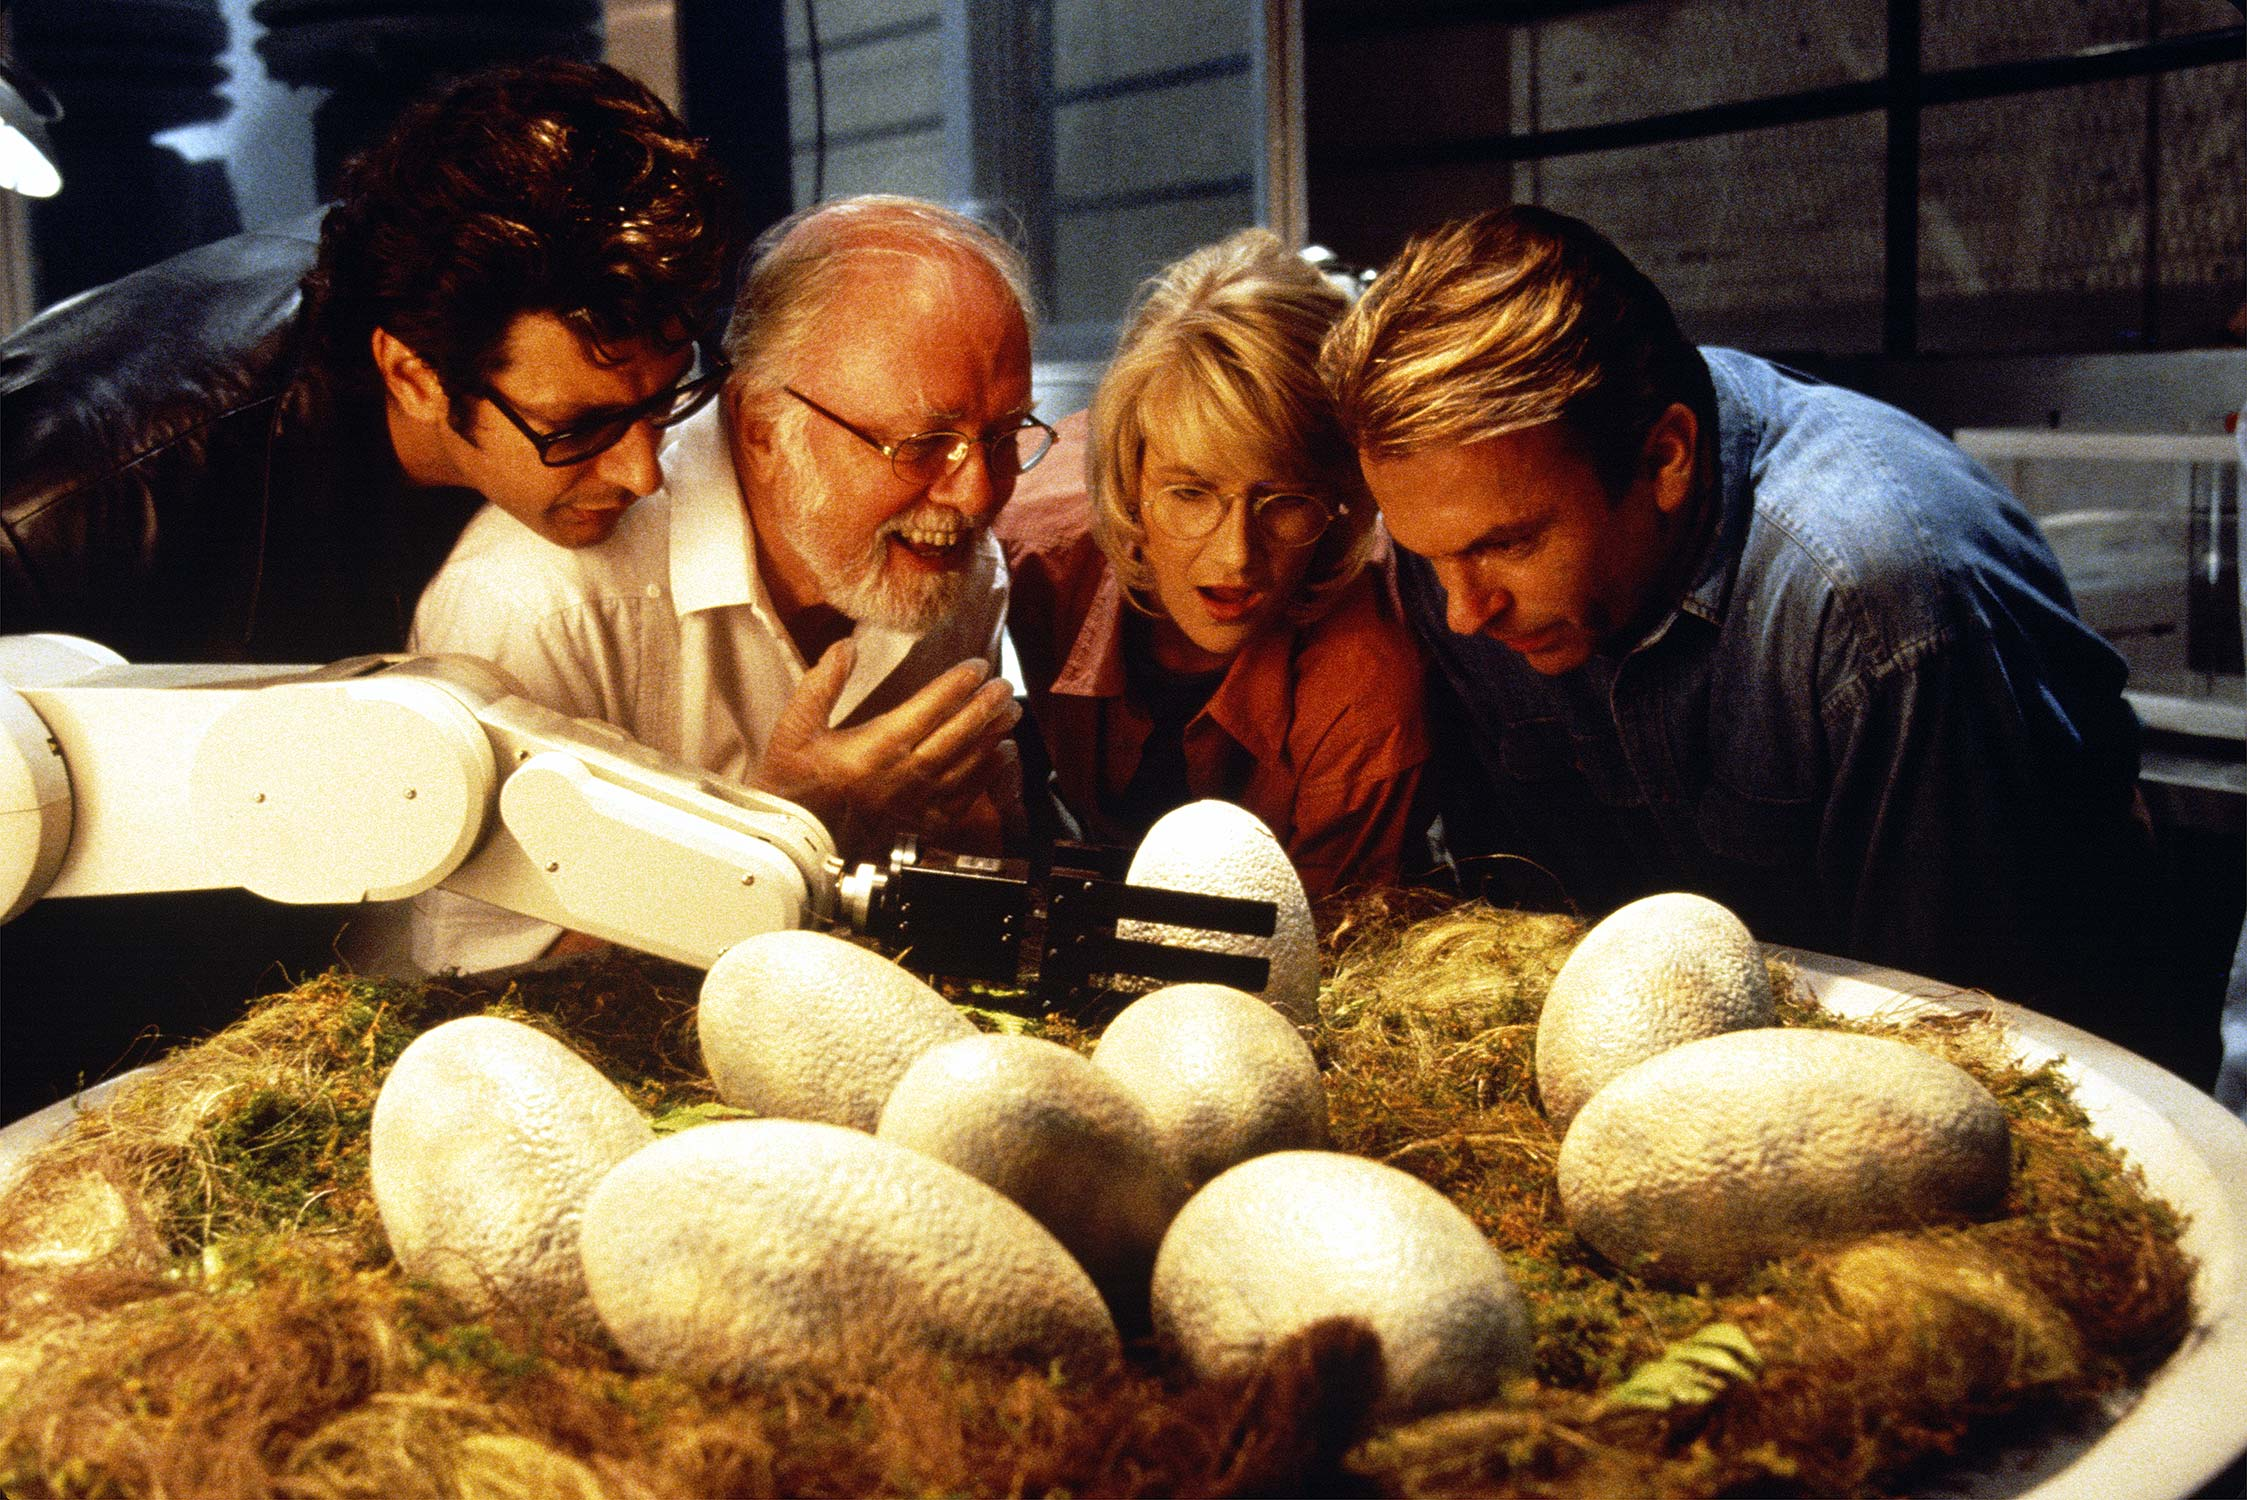 Jeff Goldblum, Richard Attenborough, Laura Dern, Sam Neill in Jurassic Park (1993)